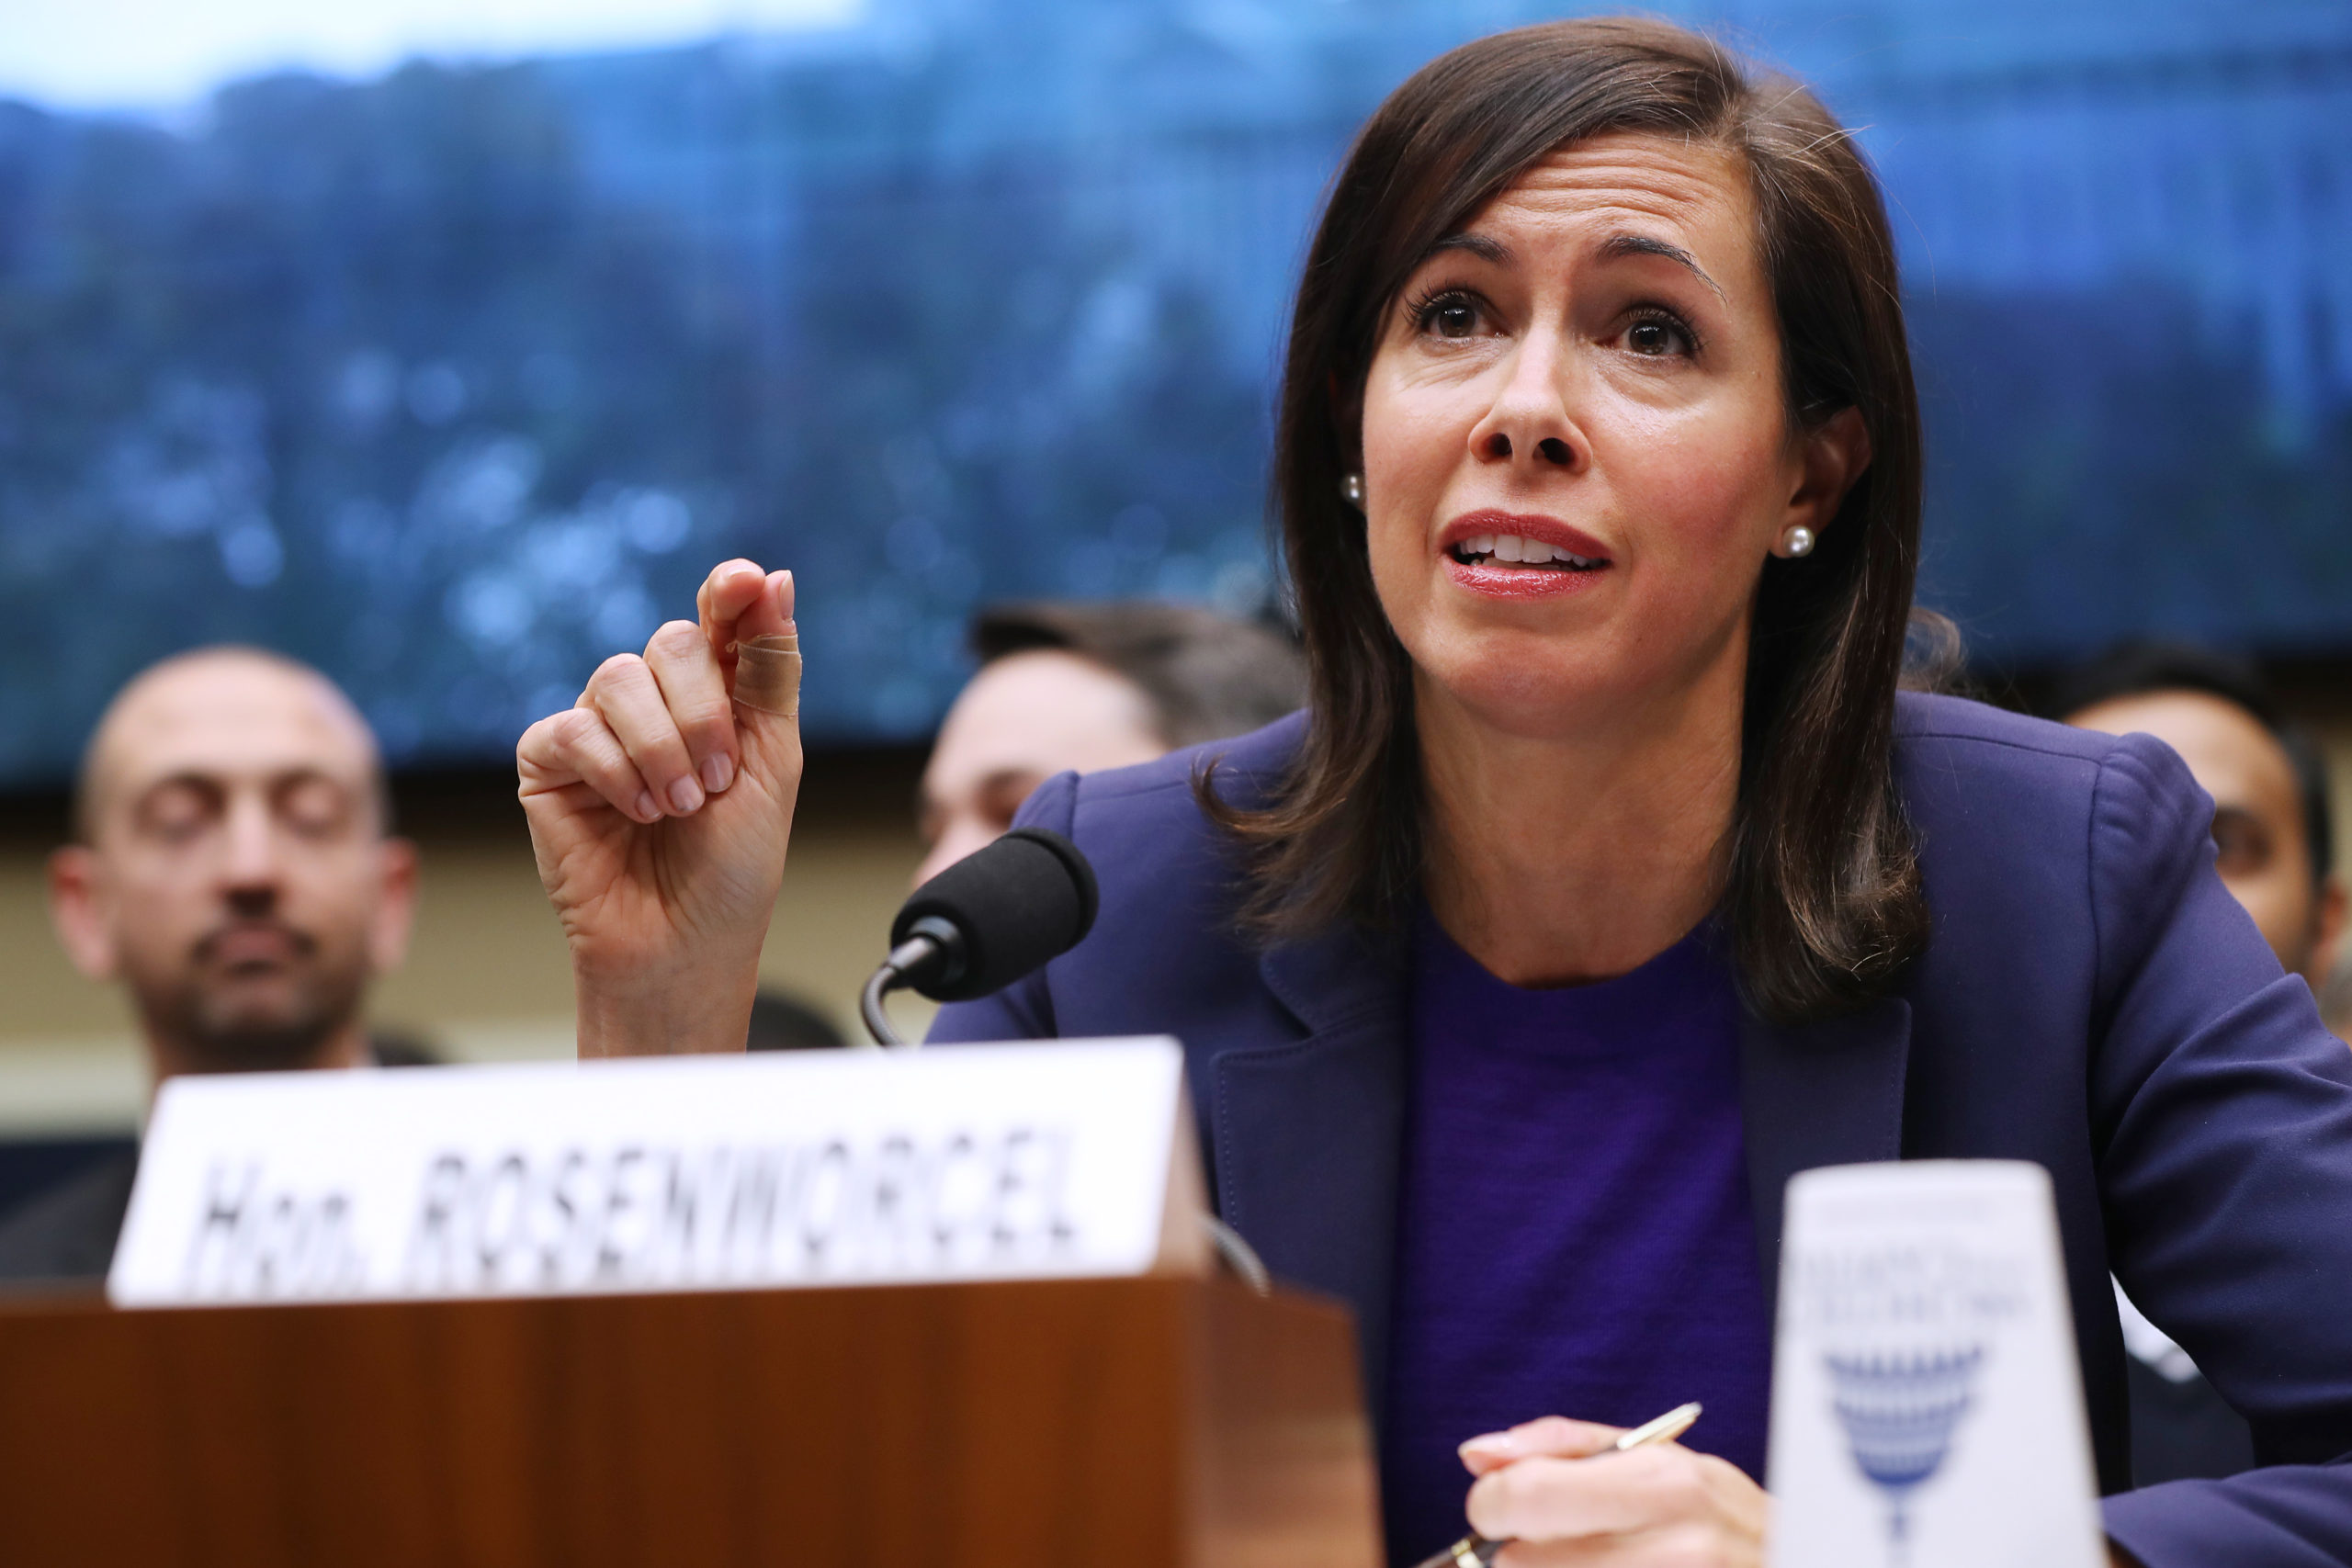 Federal Communication Commission Chairwoman Jessica Rosenworcel testifies before the House Energy and Commerce Committee's Communications and Technology Subcommittee. (Photo by Chip Somodevilla/Getty Images)